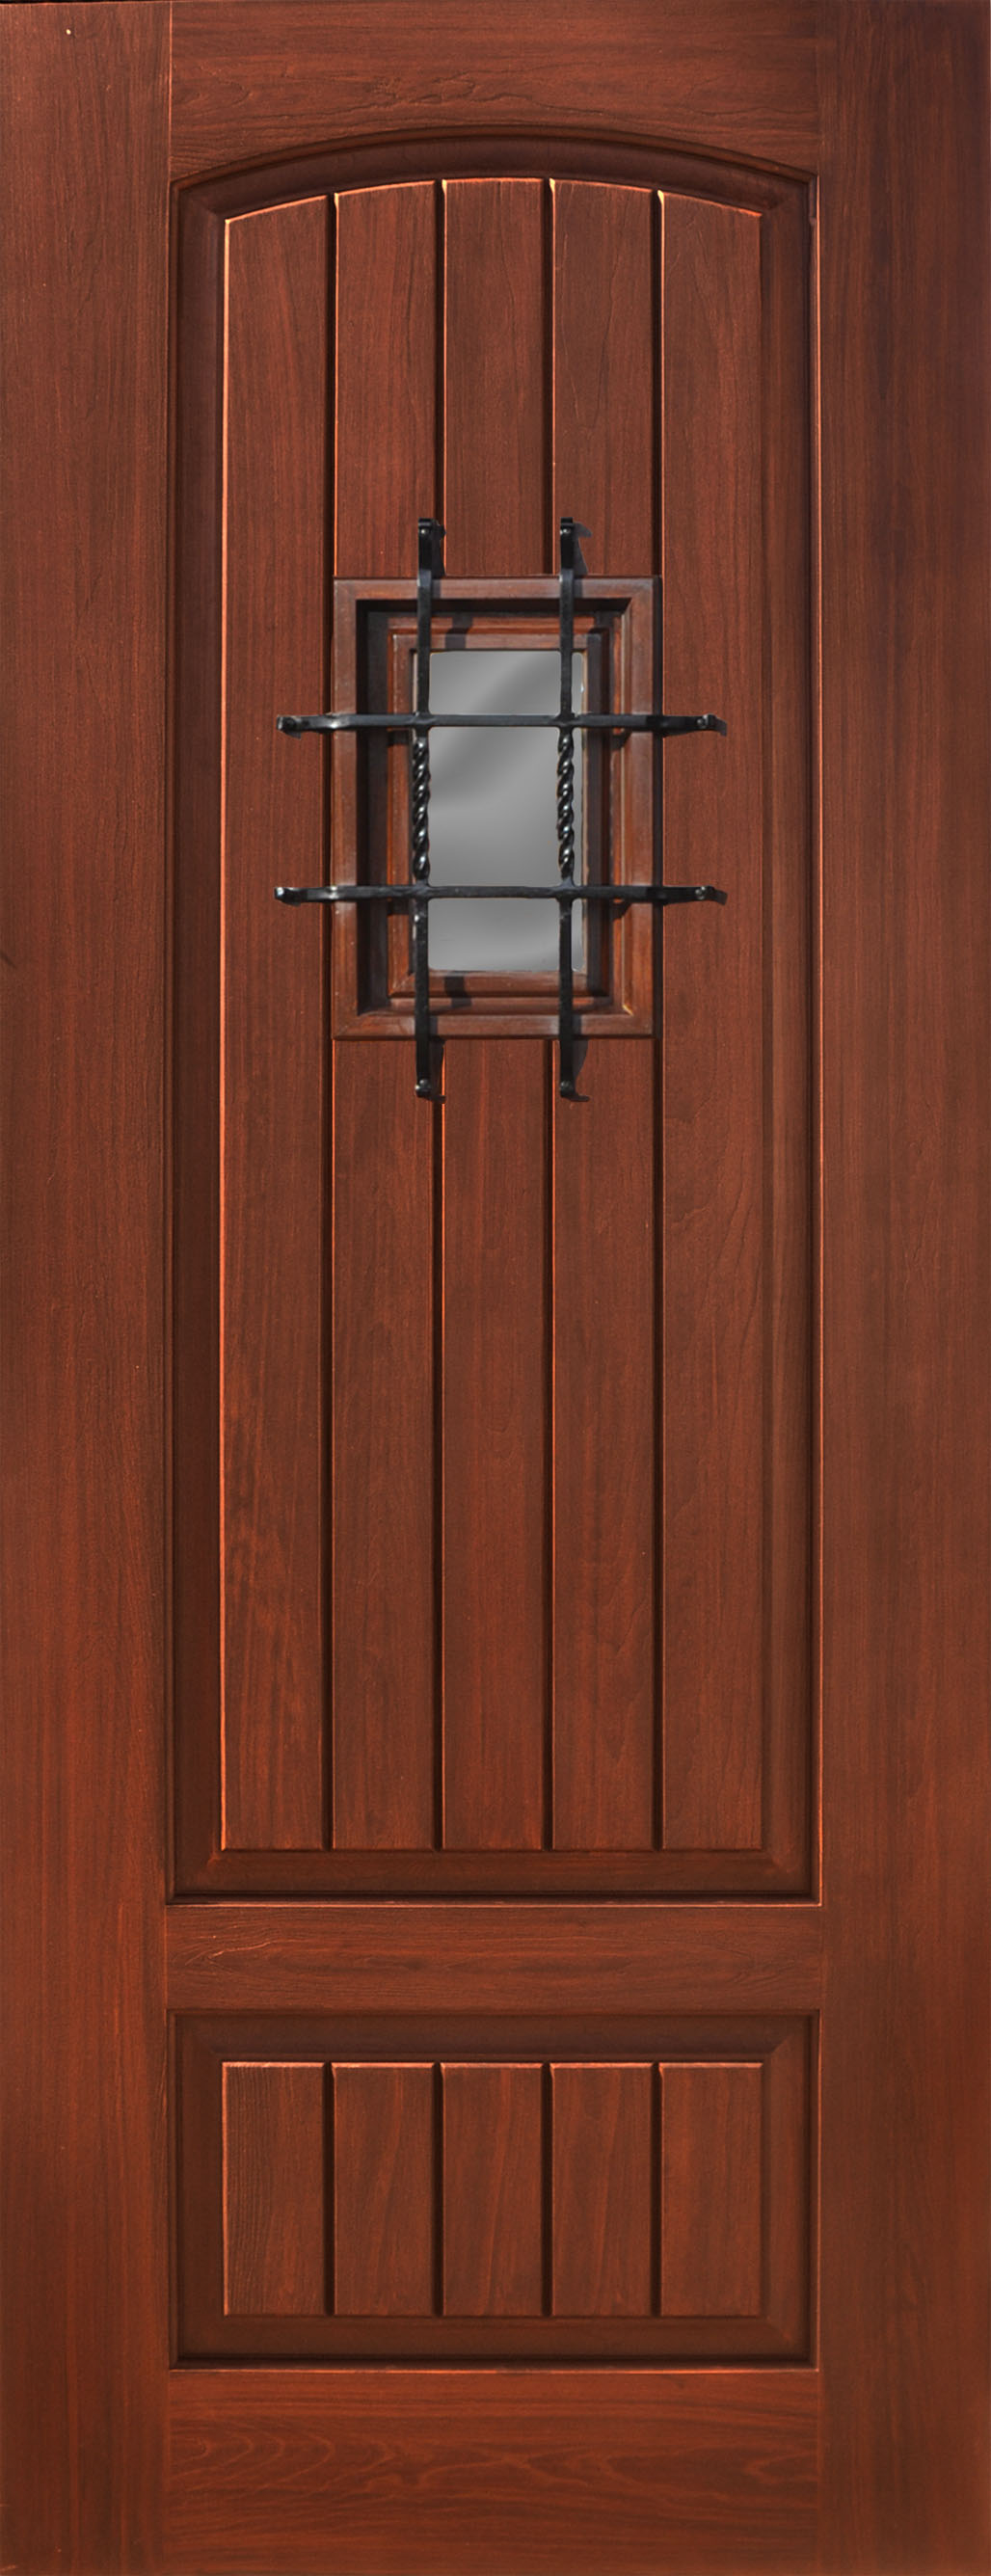 Fiberglass Estancia 2 Panel V-Groove Madrid Door & Fiberglass Estancia 2 Panel V-Groove Madrid Door u2013 The Front Door ...